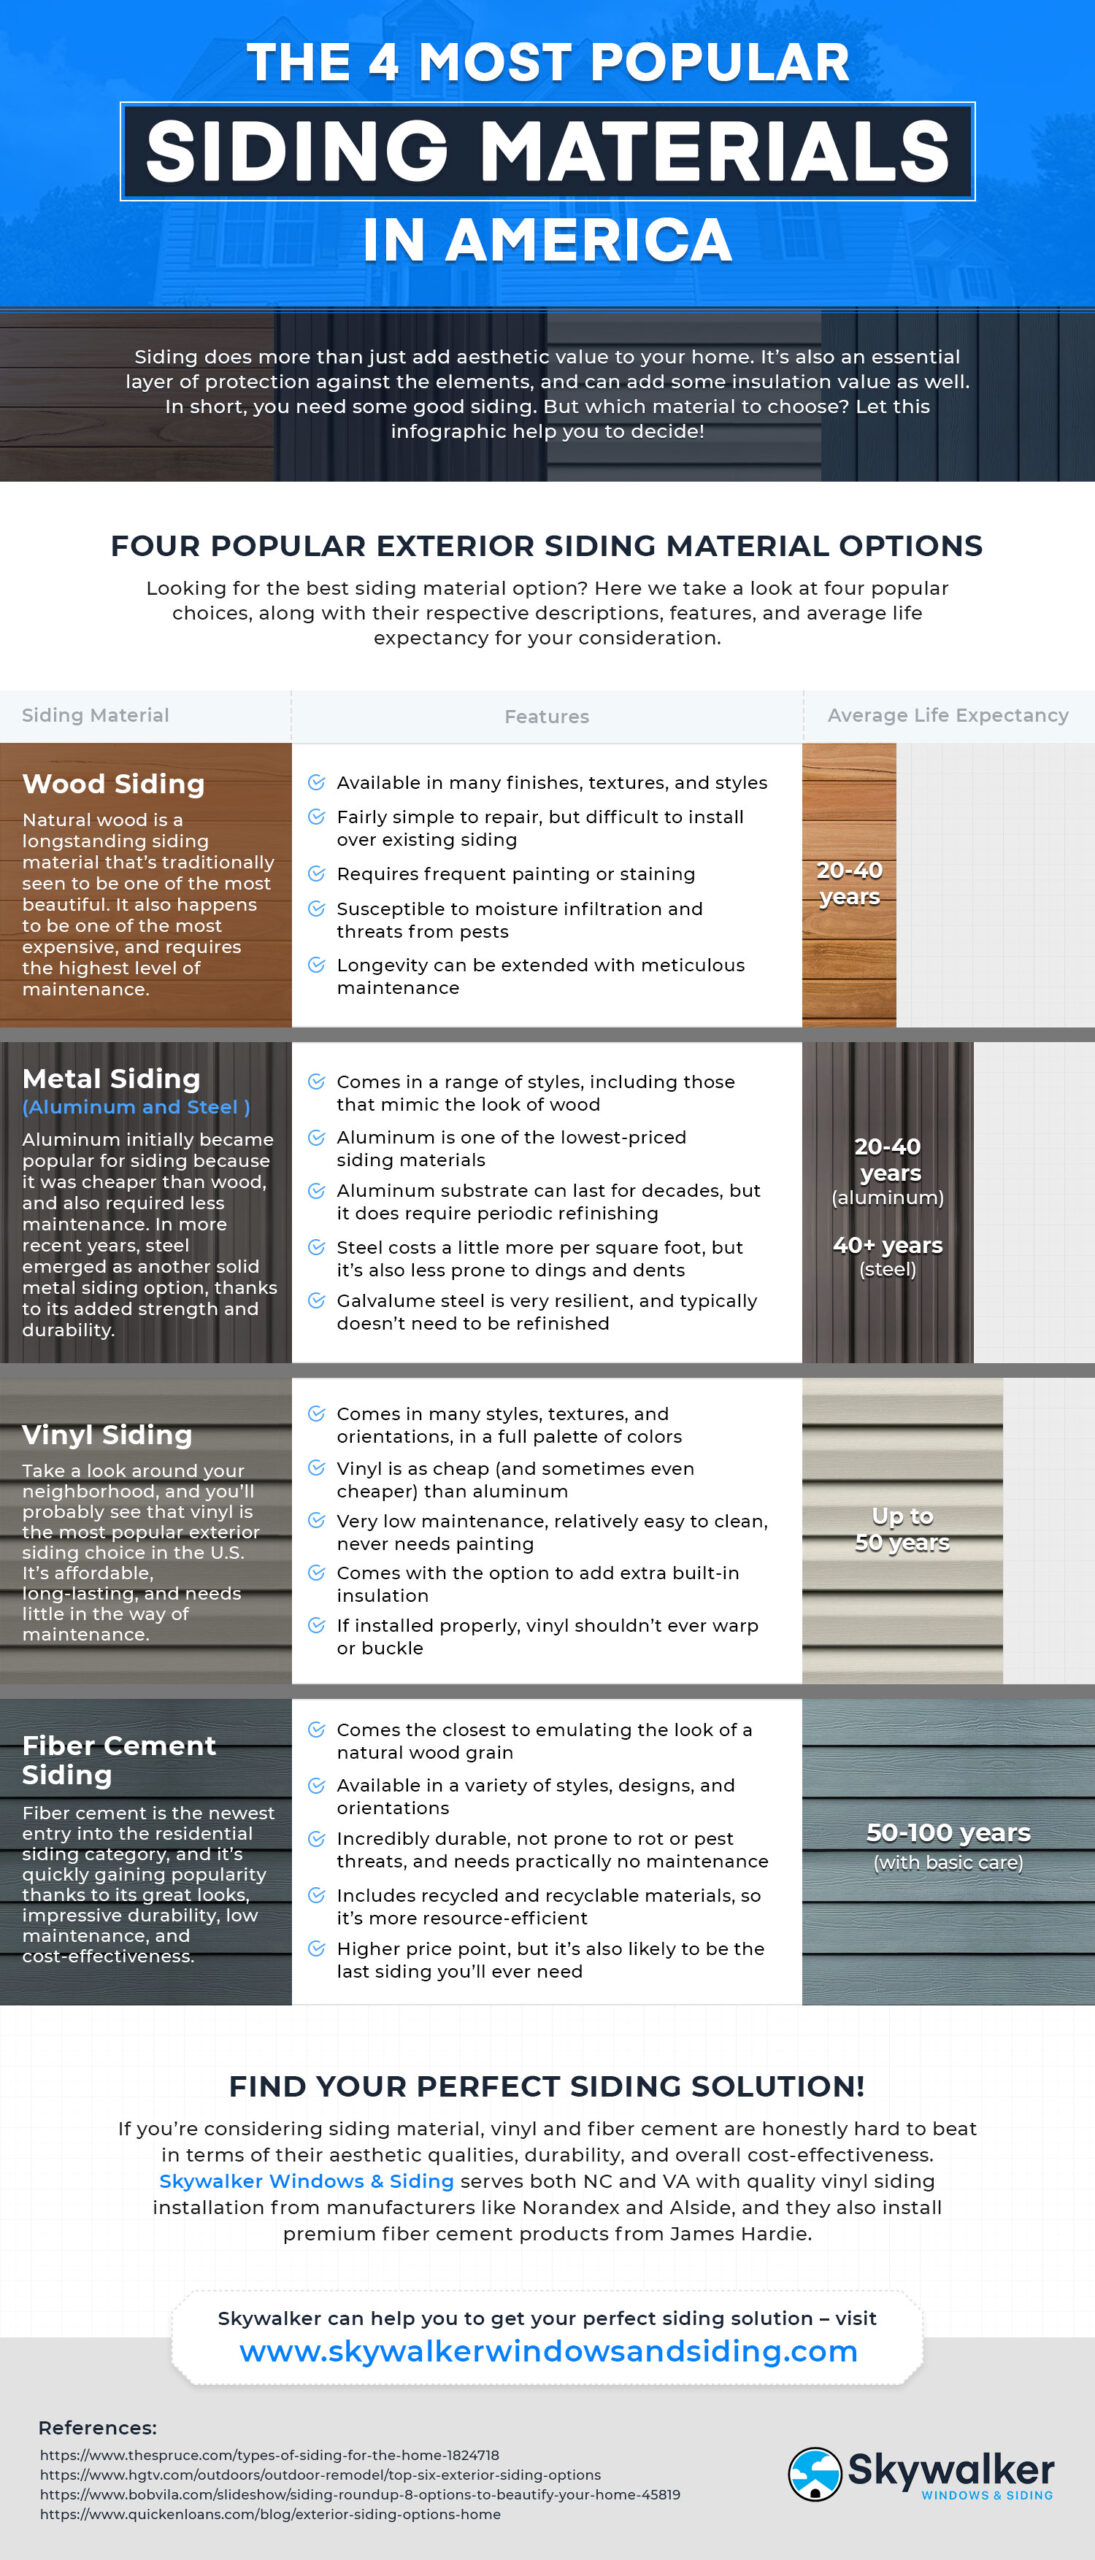 Four Most Popular Home Siding Materials in America